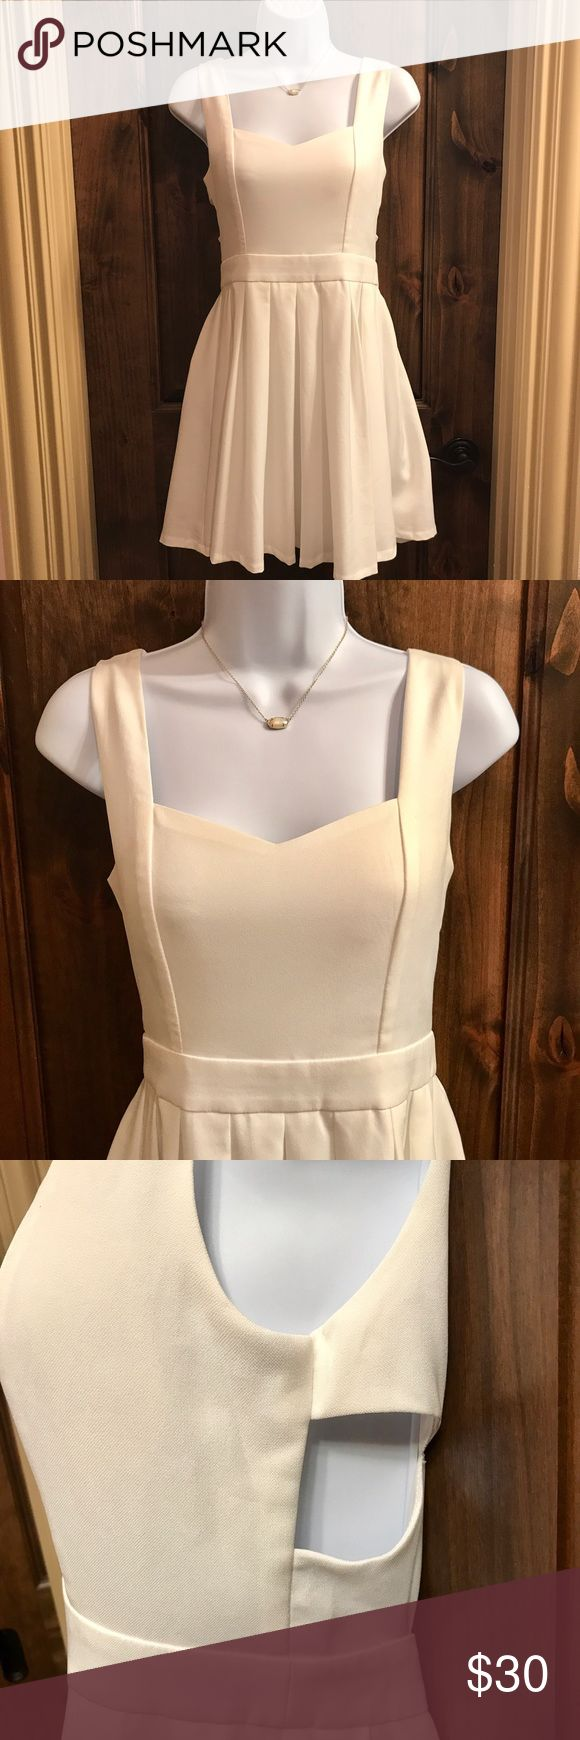 Tea & Cup White Cut Out Dress This super cute white dress is perfect for any occasion! The heart-shaped key hole back and cut outs around the waist make it super fun and flirty! Only worn once. Tea n Cup Dresses Mini